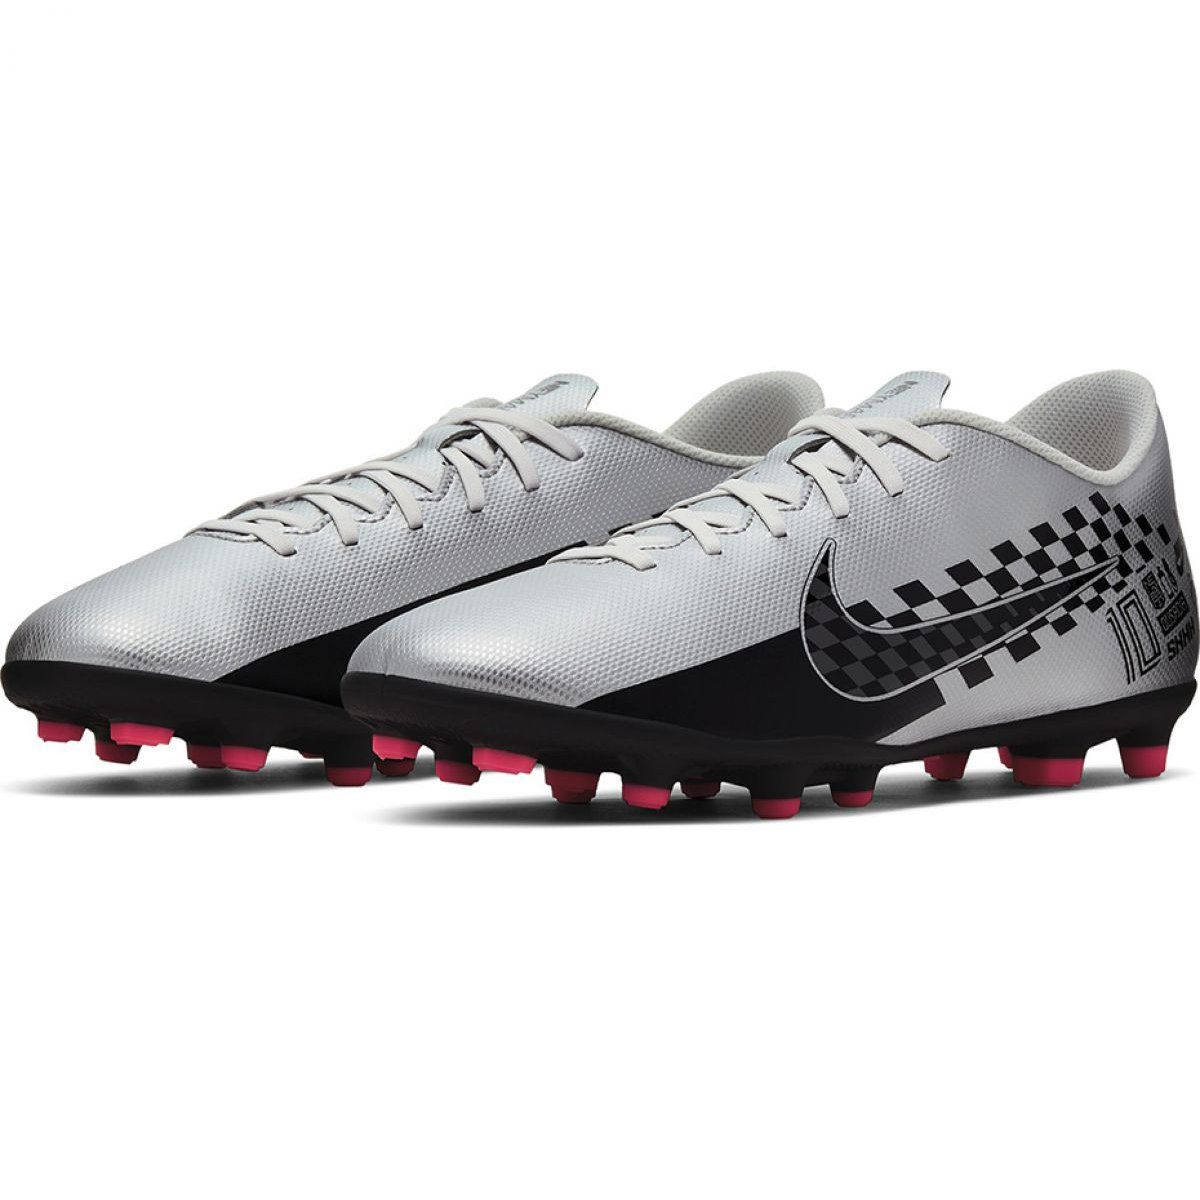 Buty Pilkarskie Nike Mercurial Vapor 13 Club Neymar Fg Mg M At7967 006 Szare Szare Nike Football Boots Football Shoes Soccer Shoes